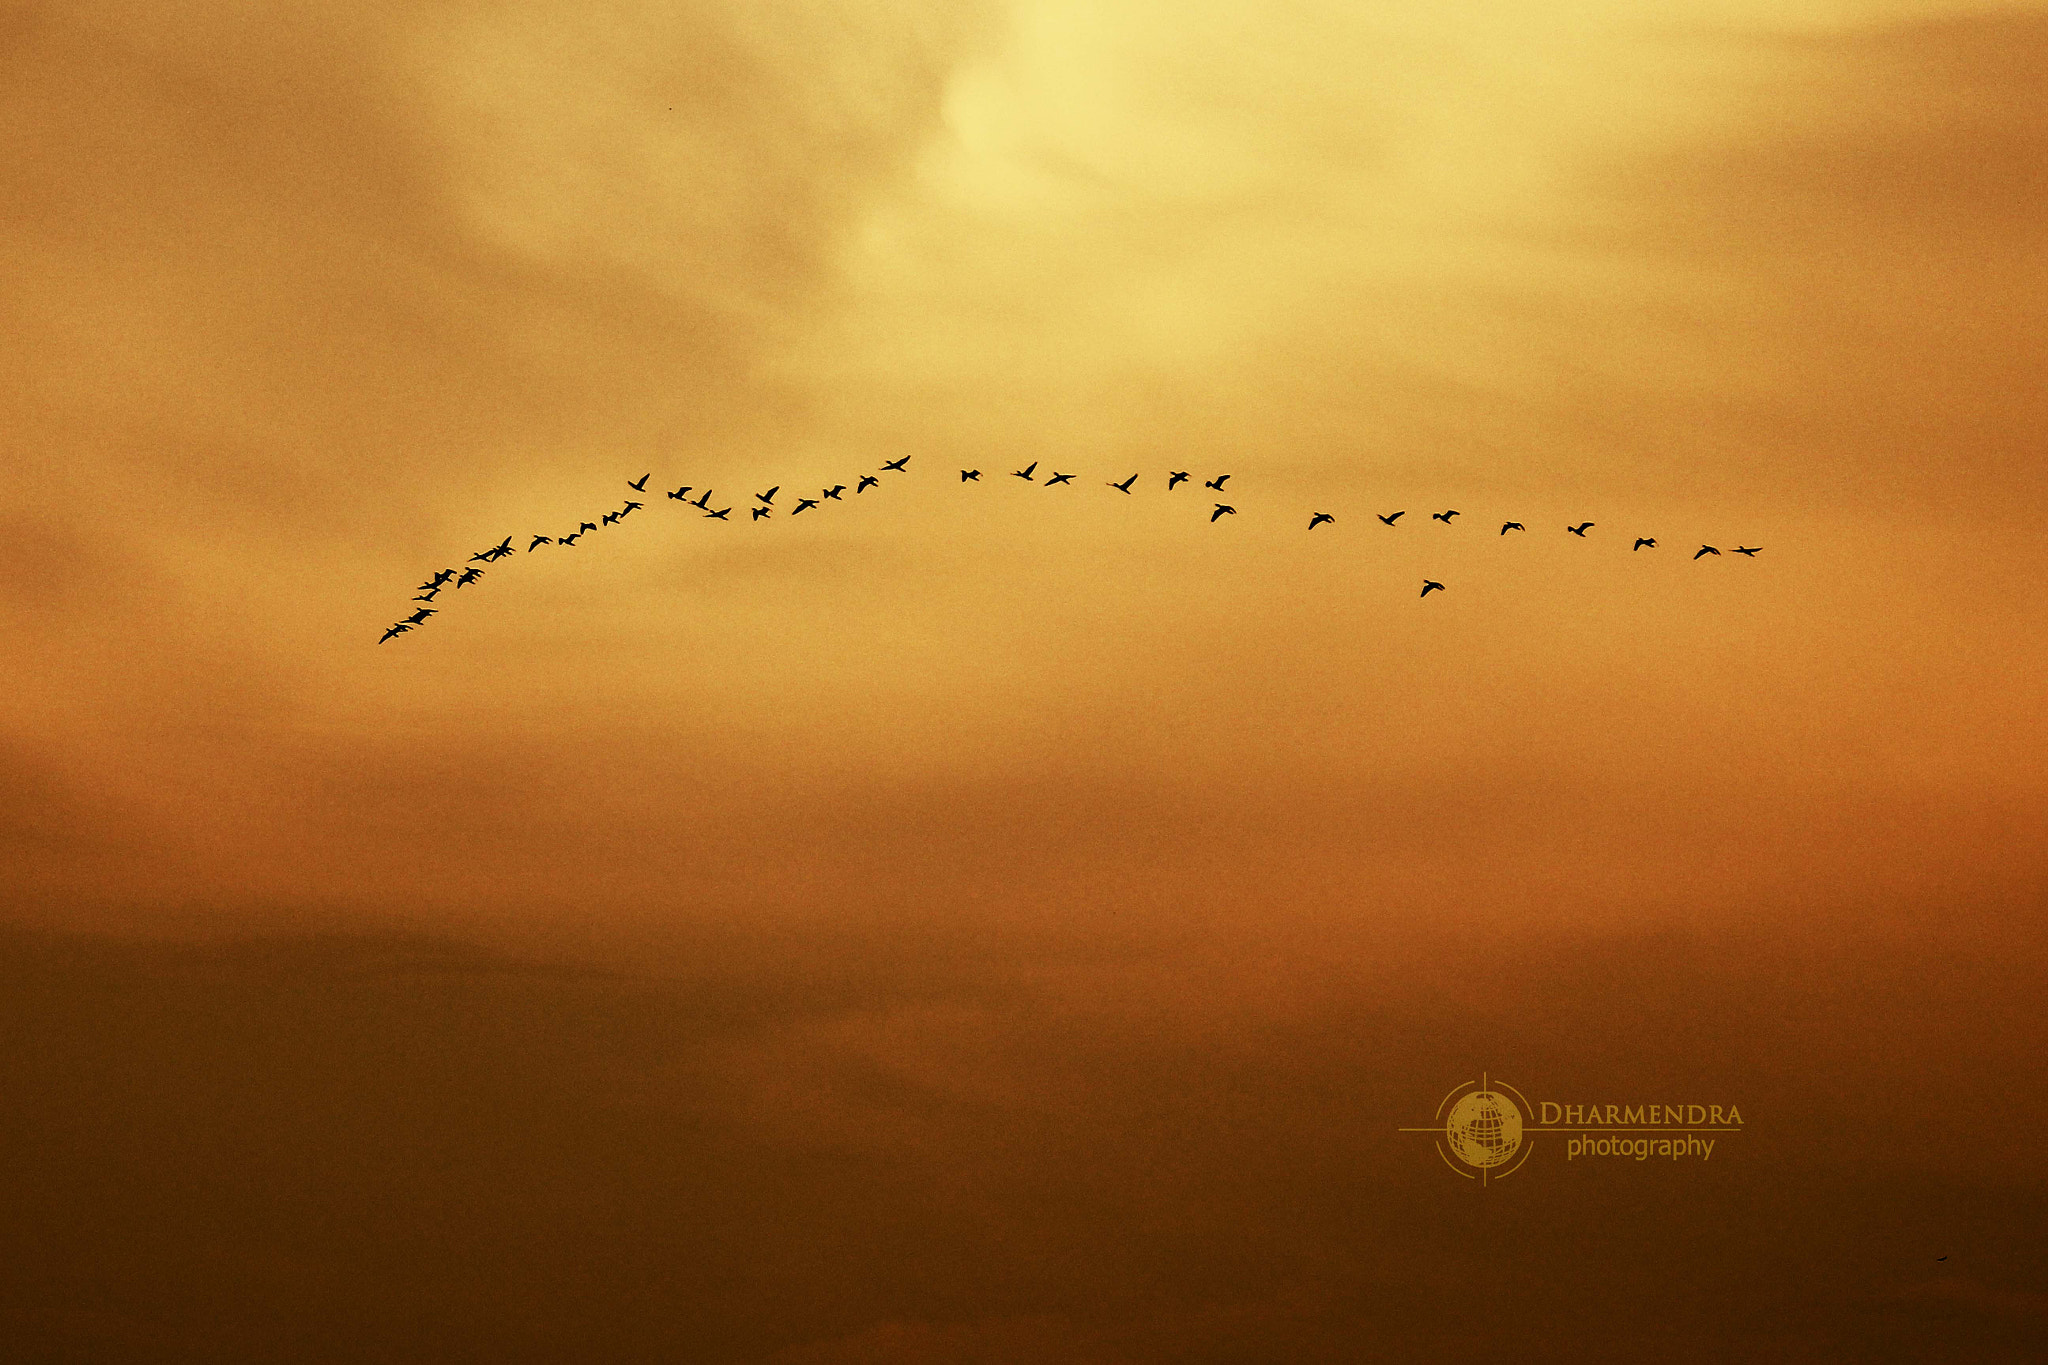 Photograph Flying Dreams by Dharmendra Kumar on 500px